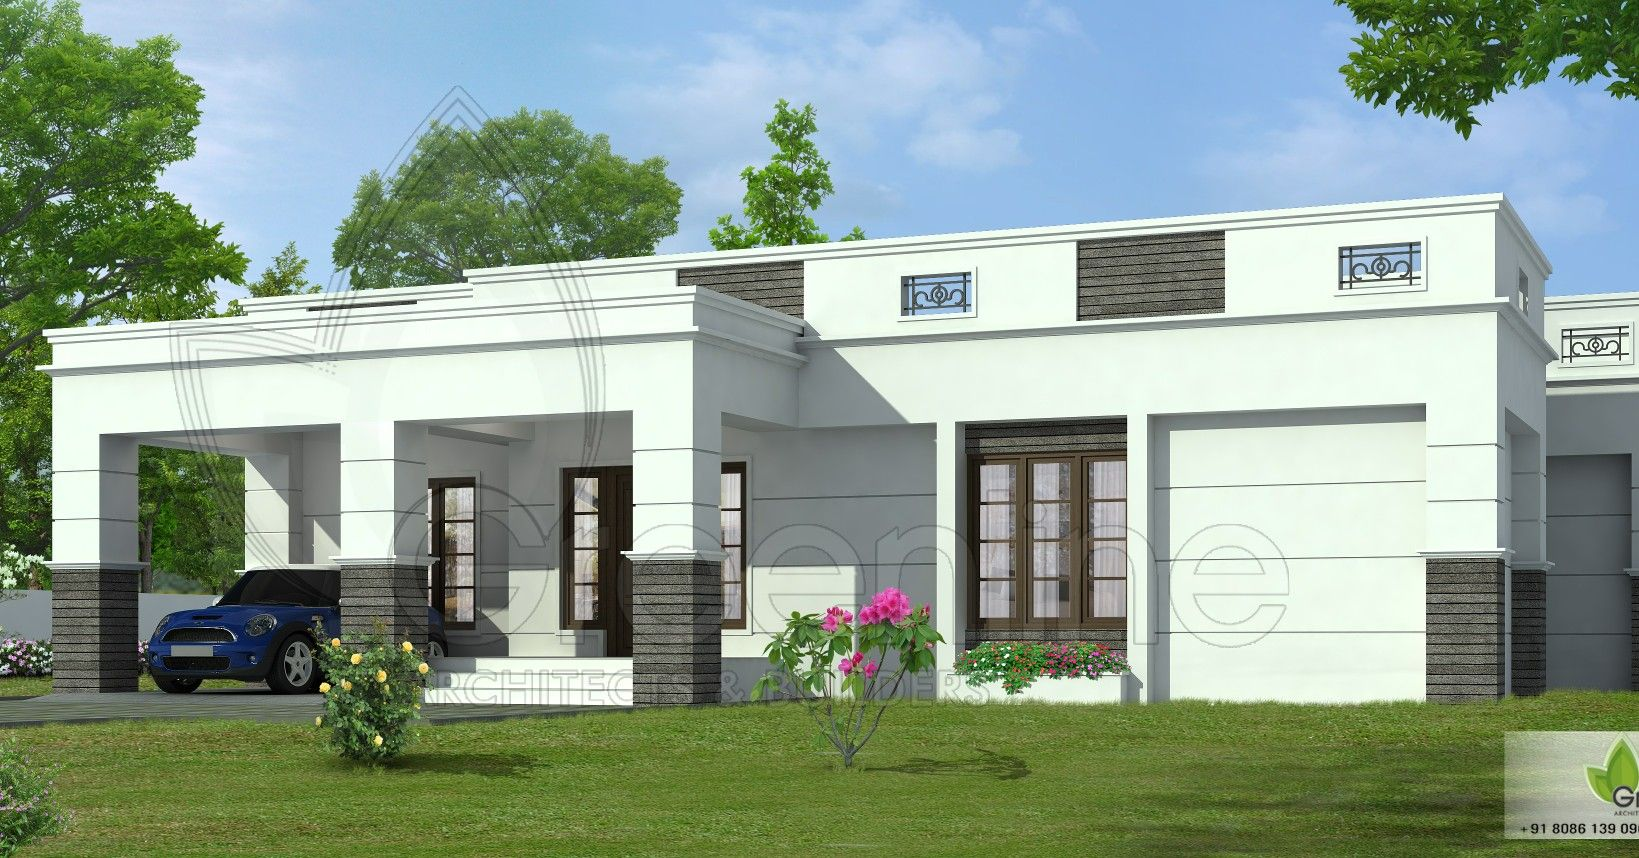 4 Bedroom Single Storied Flat Roof Home Flat Roof House House Roof House Plan Gallery